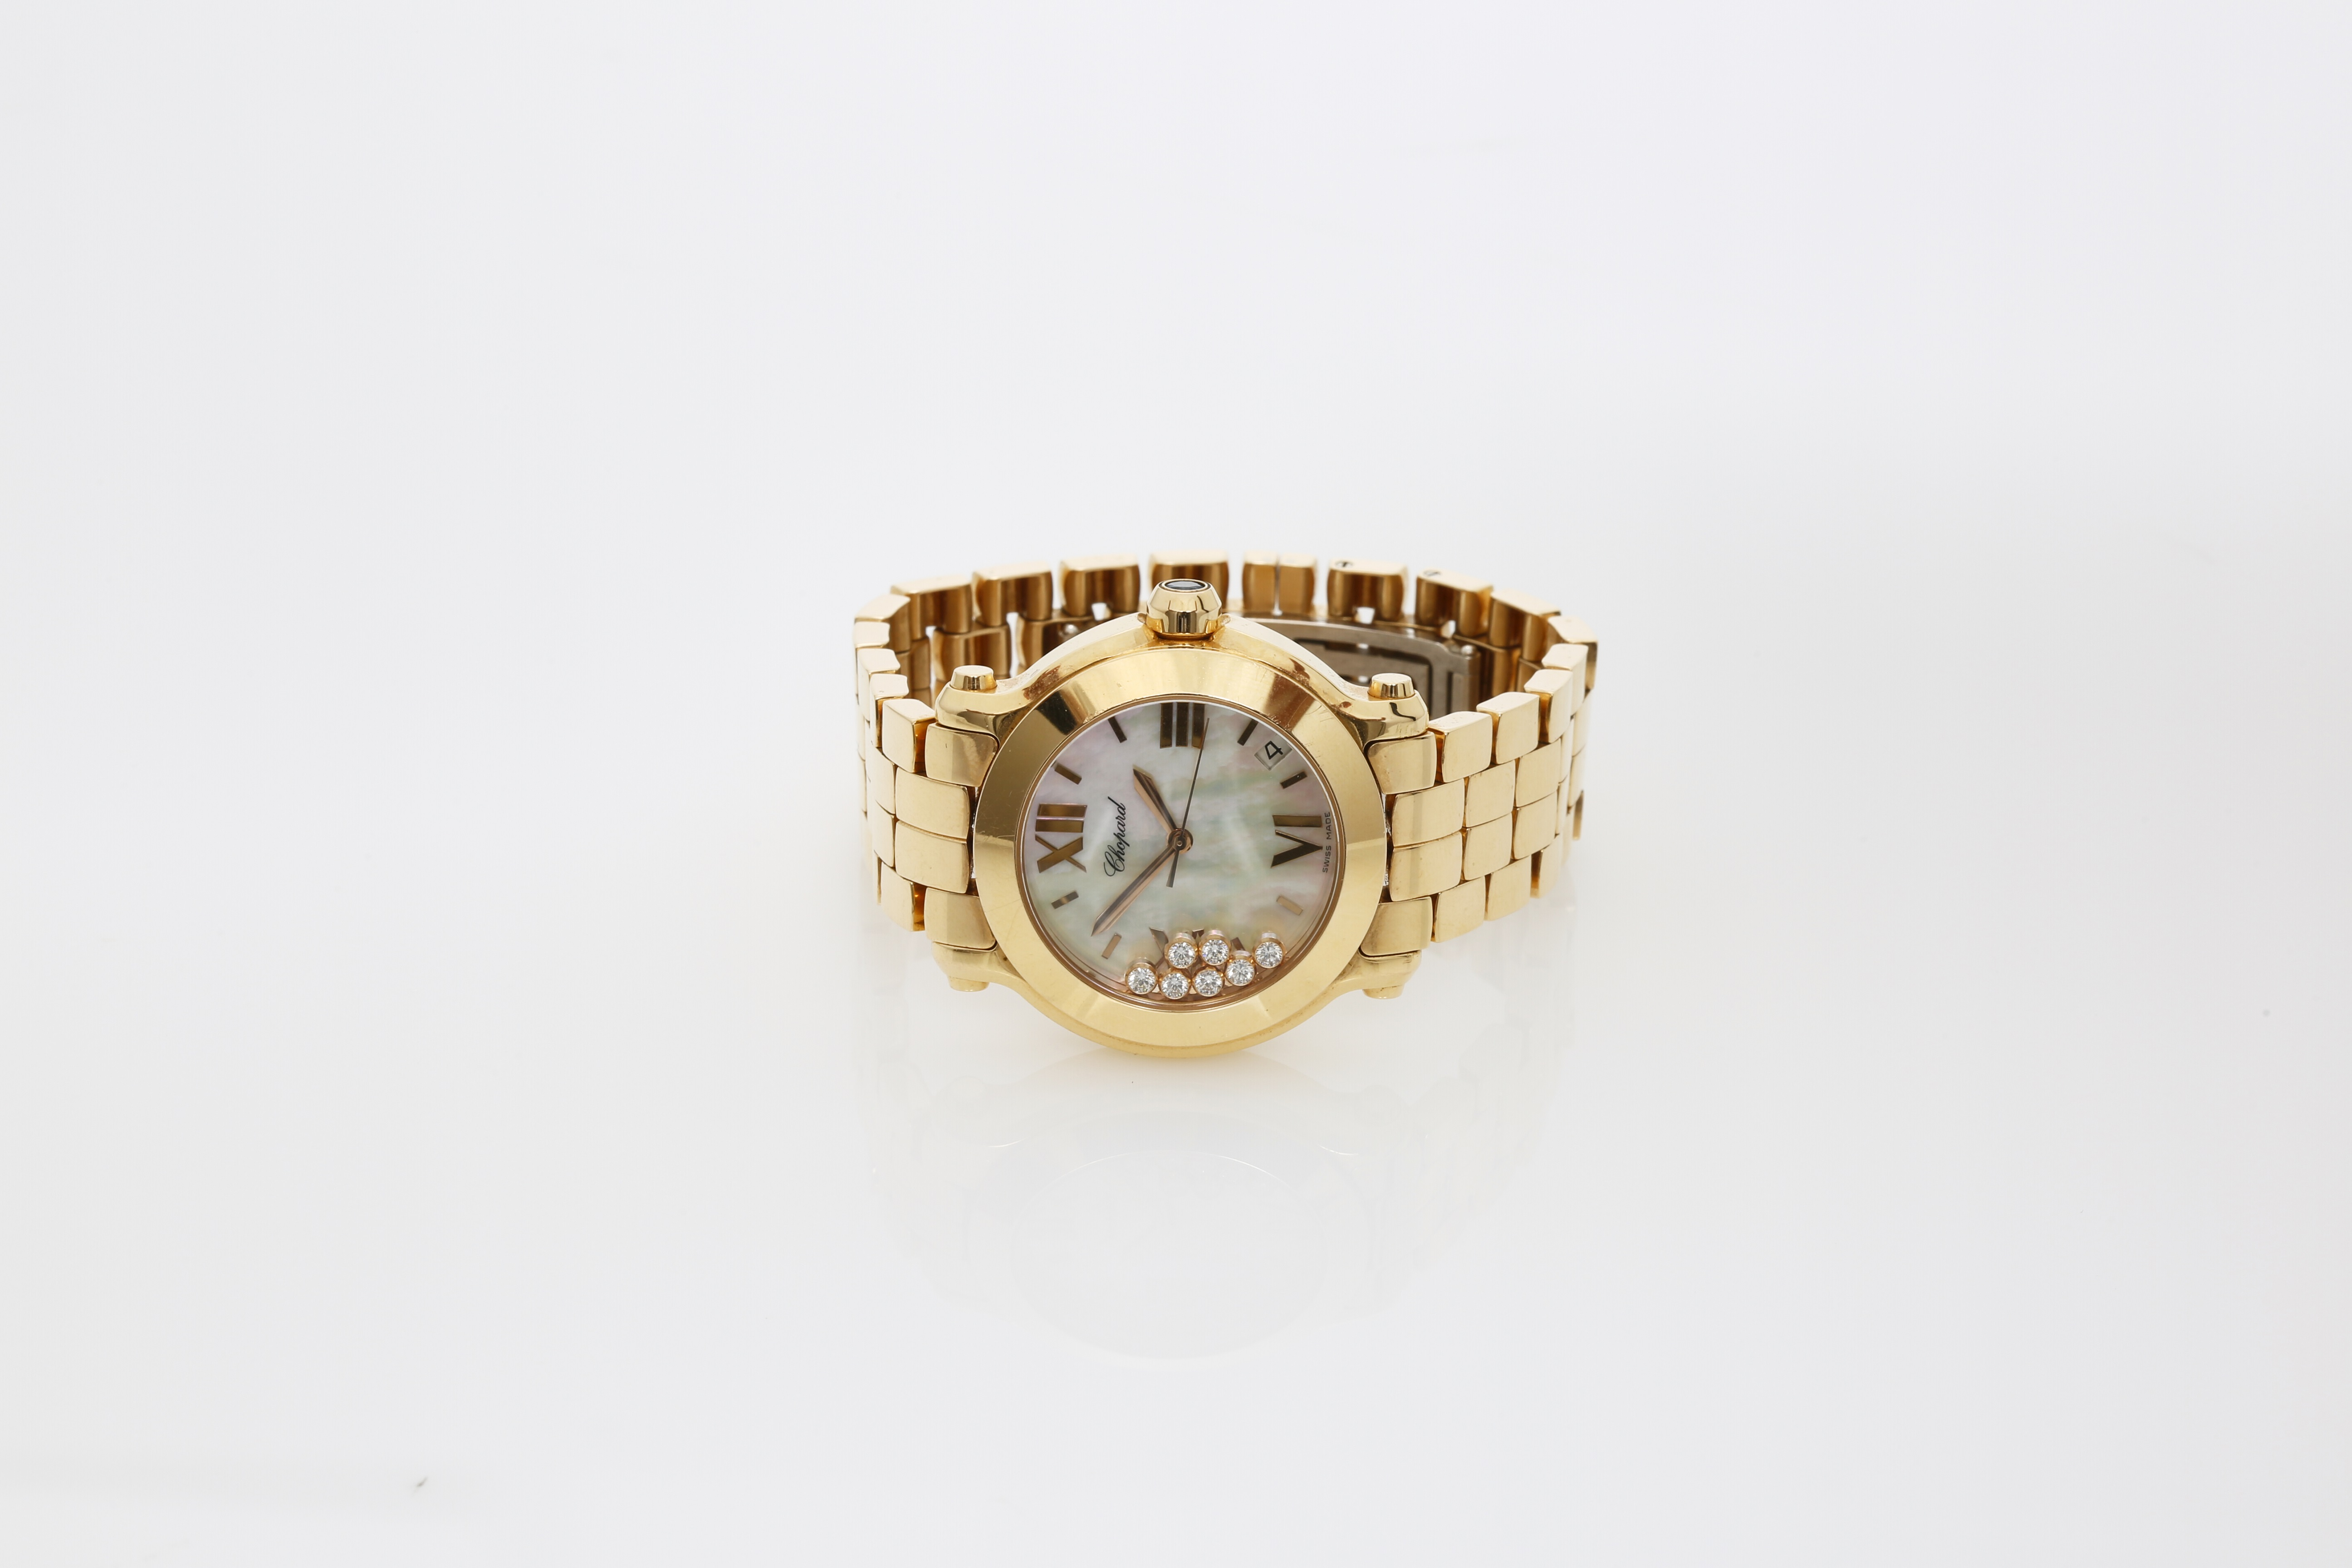 A Lady's 18K Rotgold Chopard Happy Sport Wristwatch with 1 Sapphire and 7 Diamonds - Image 4 of 10